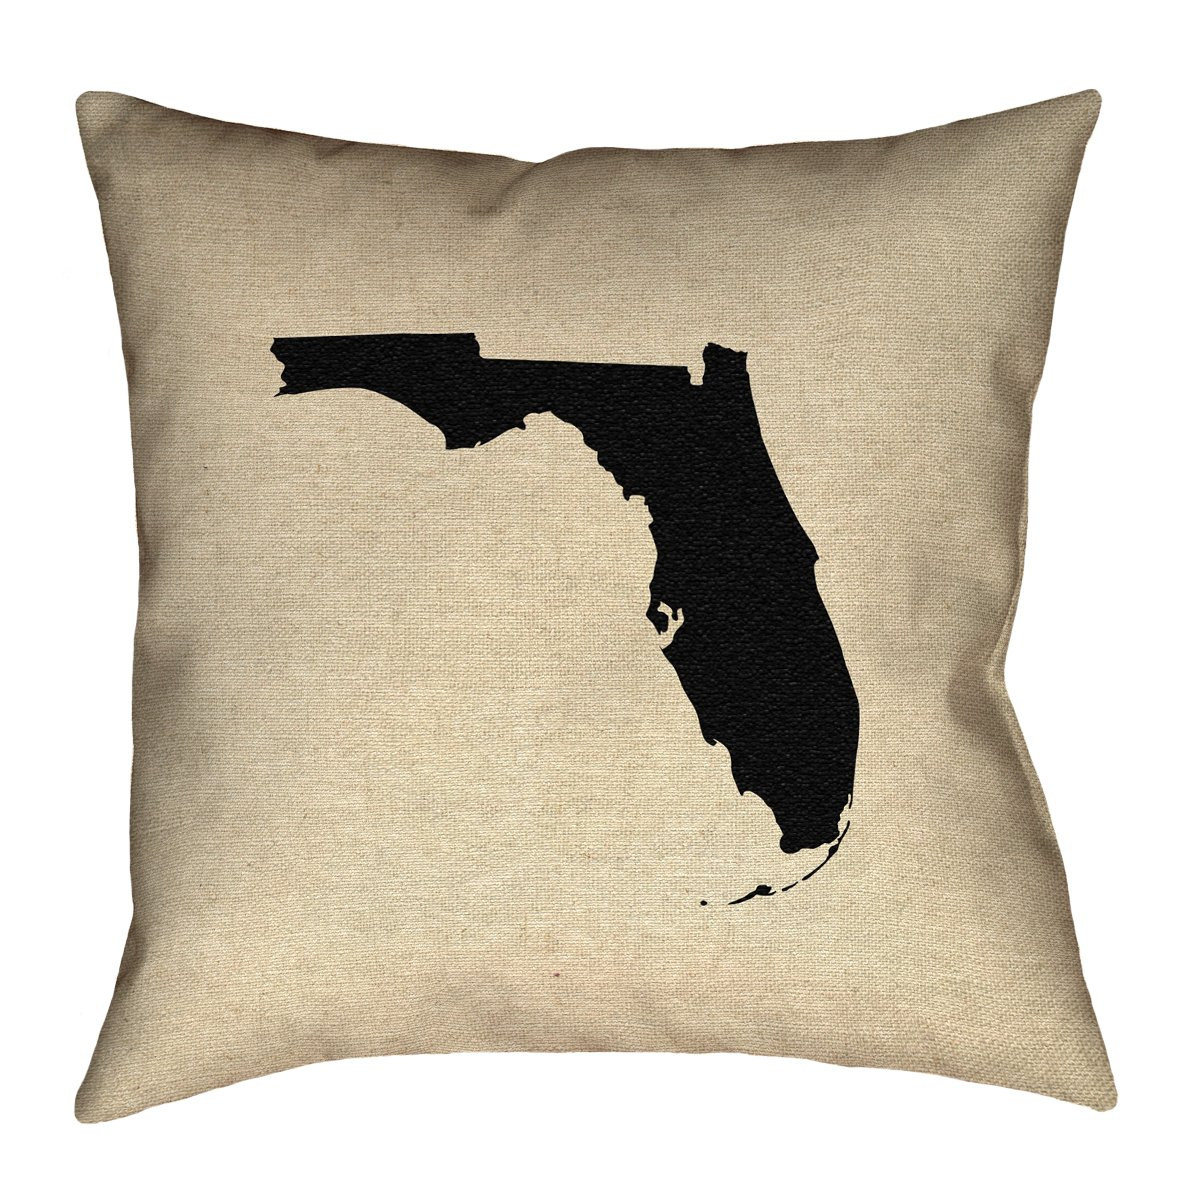 ArtVerse Katelyn Smith 20 x 20 Poly Twill Double Sided Print with Concealed Zipper /& Insert Florida Pillow